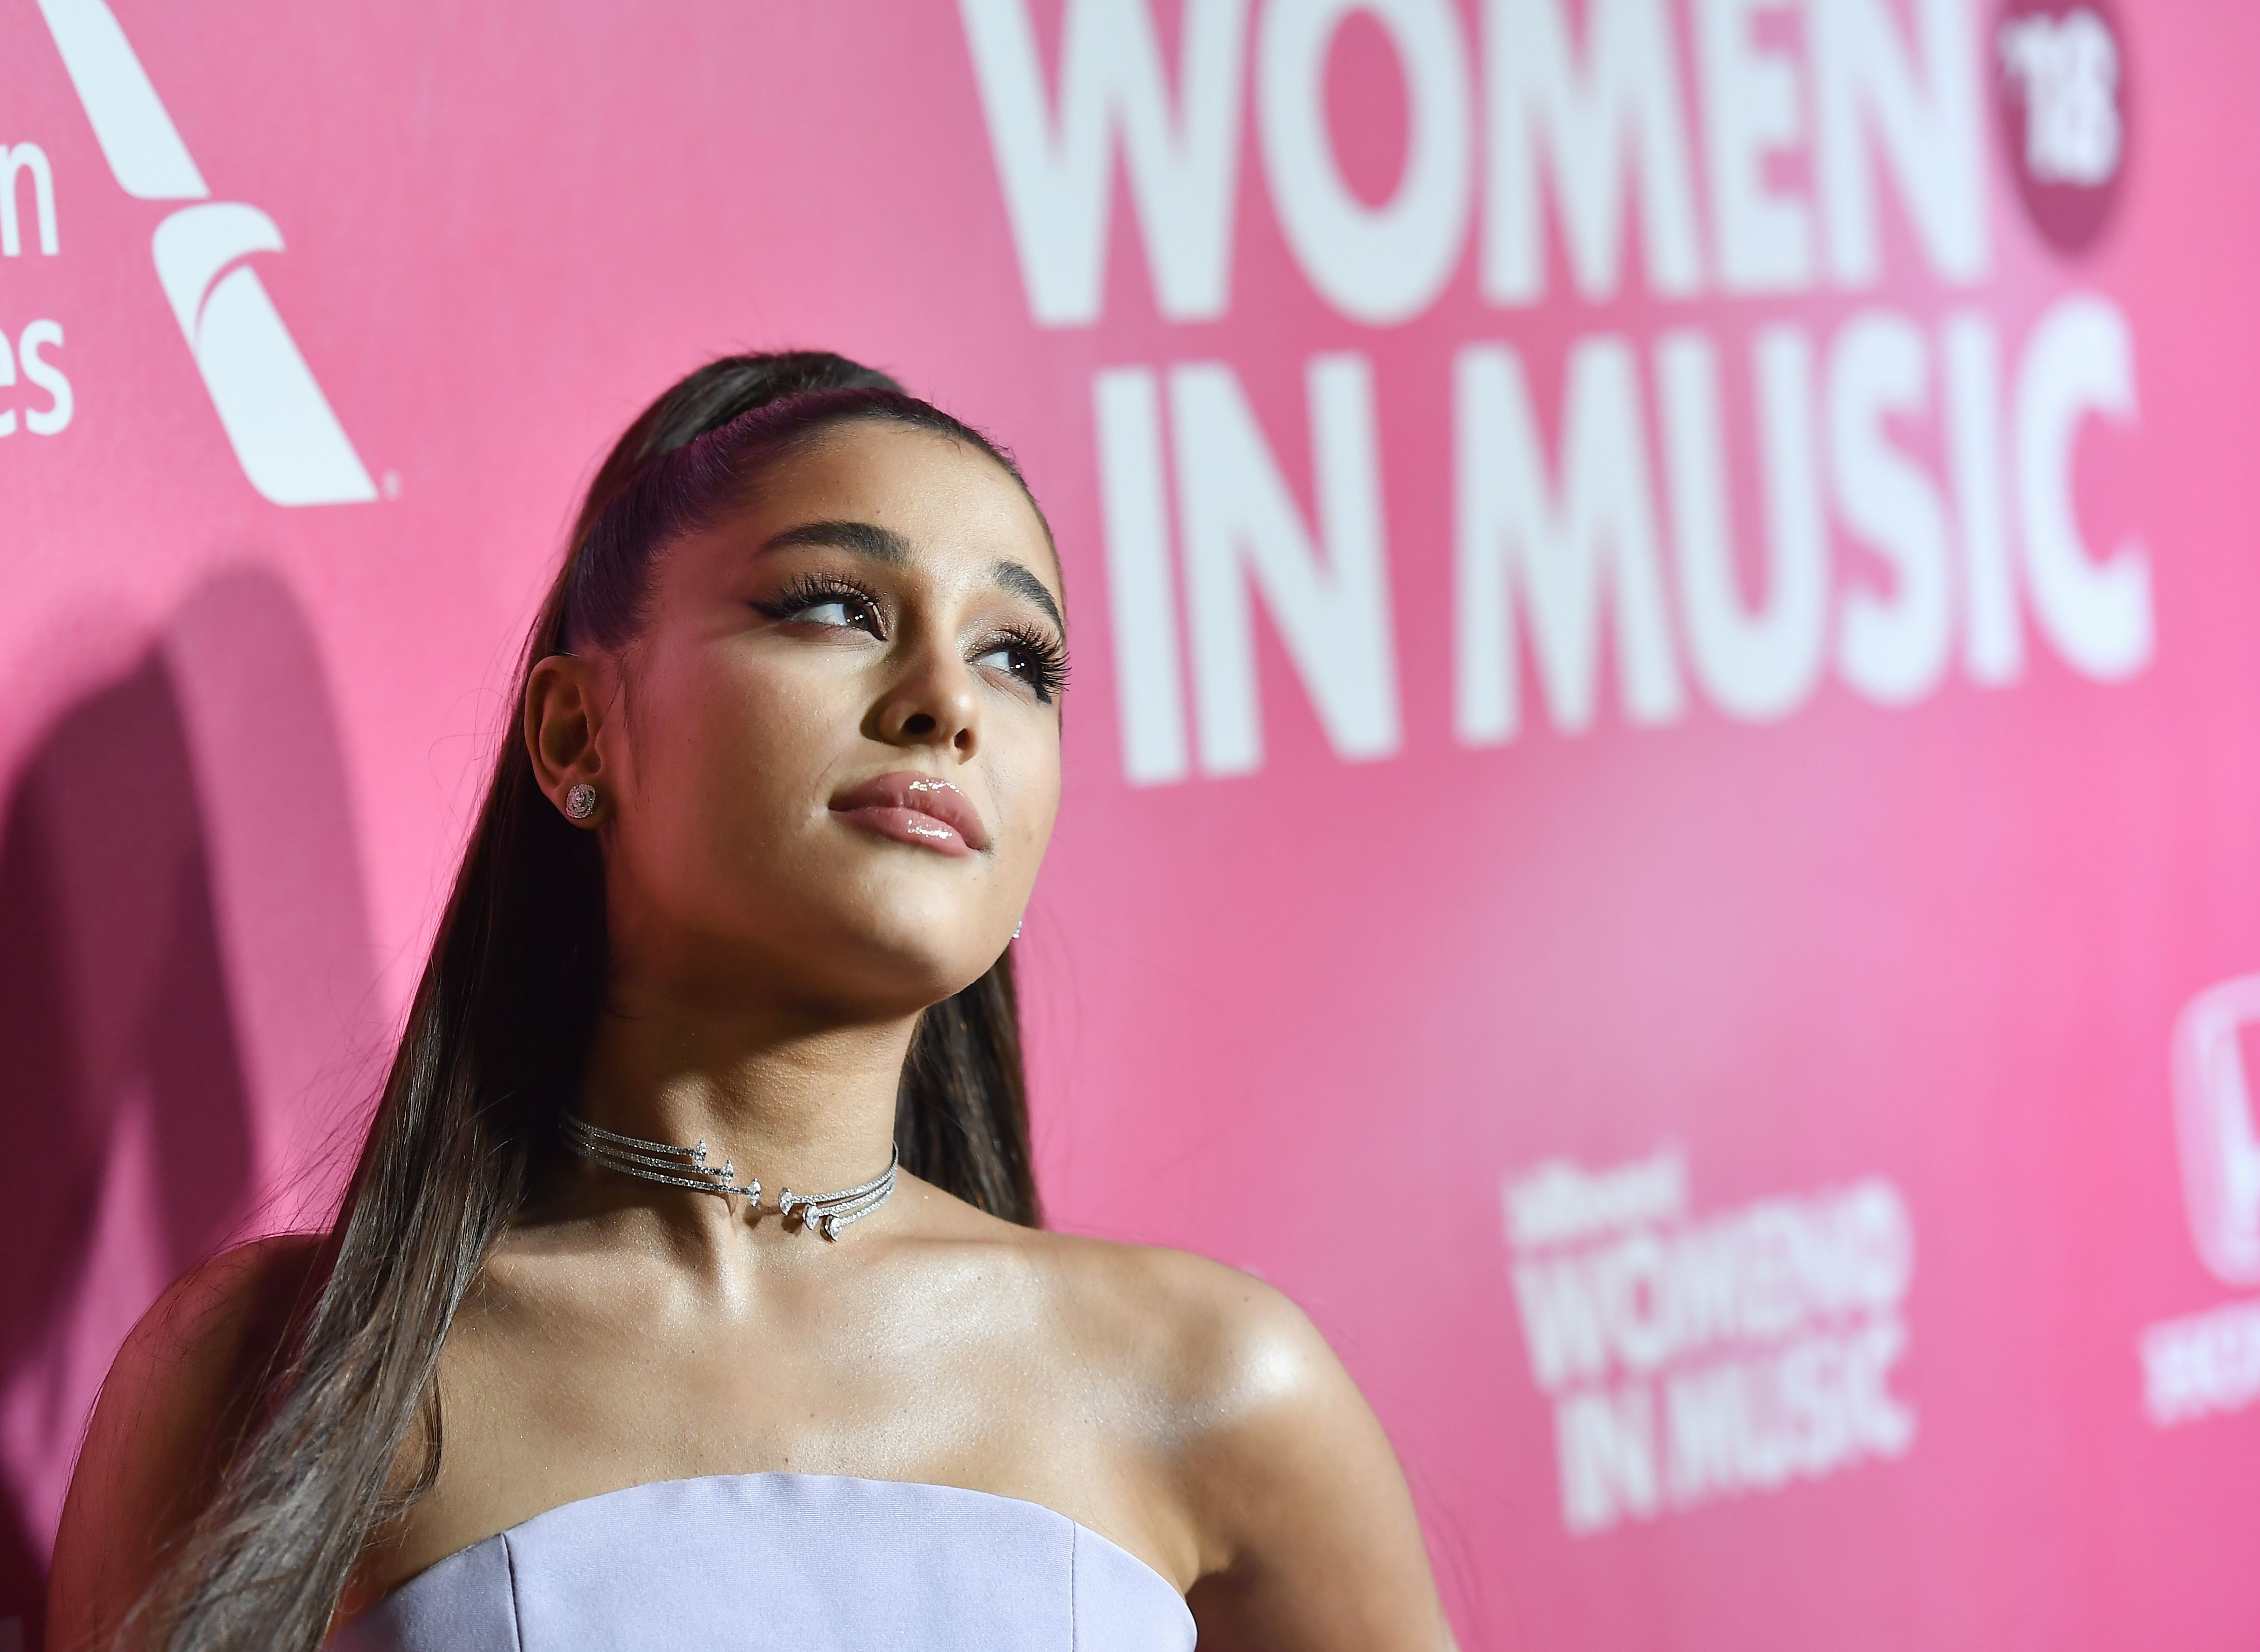 ariana-grande-just-won-her-first-grammy-but-didnt-show-up-to-accept-the-award